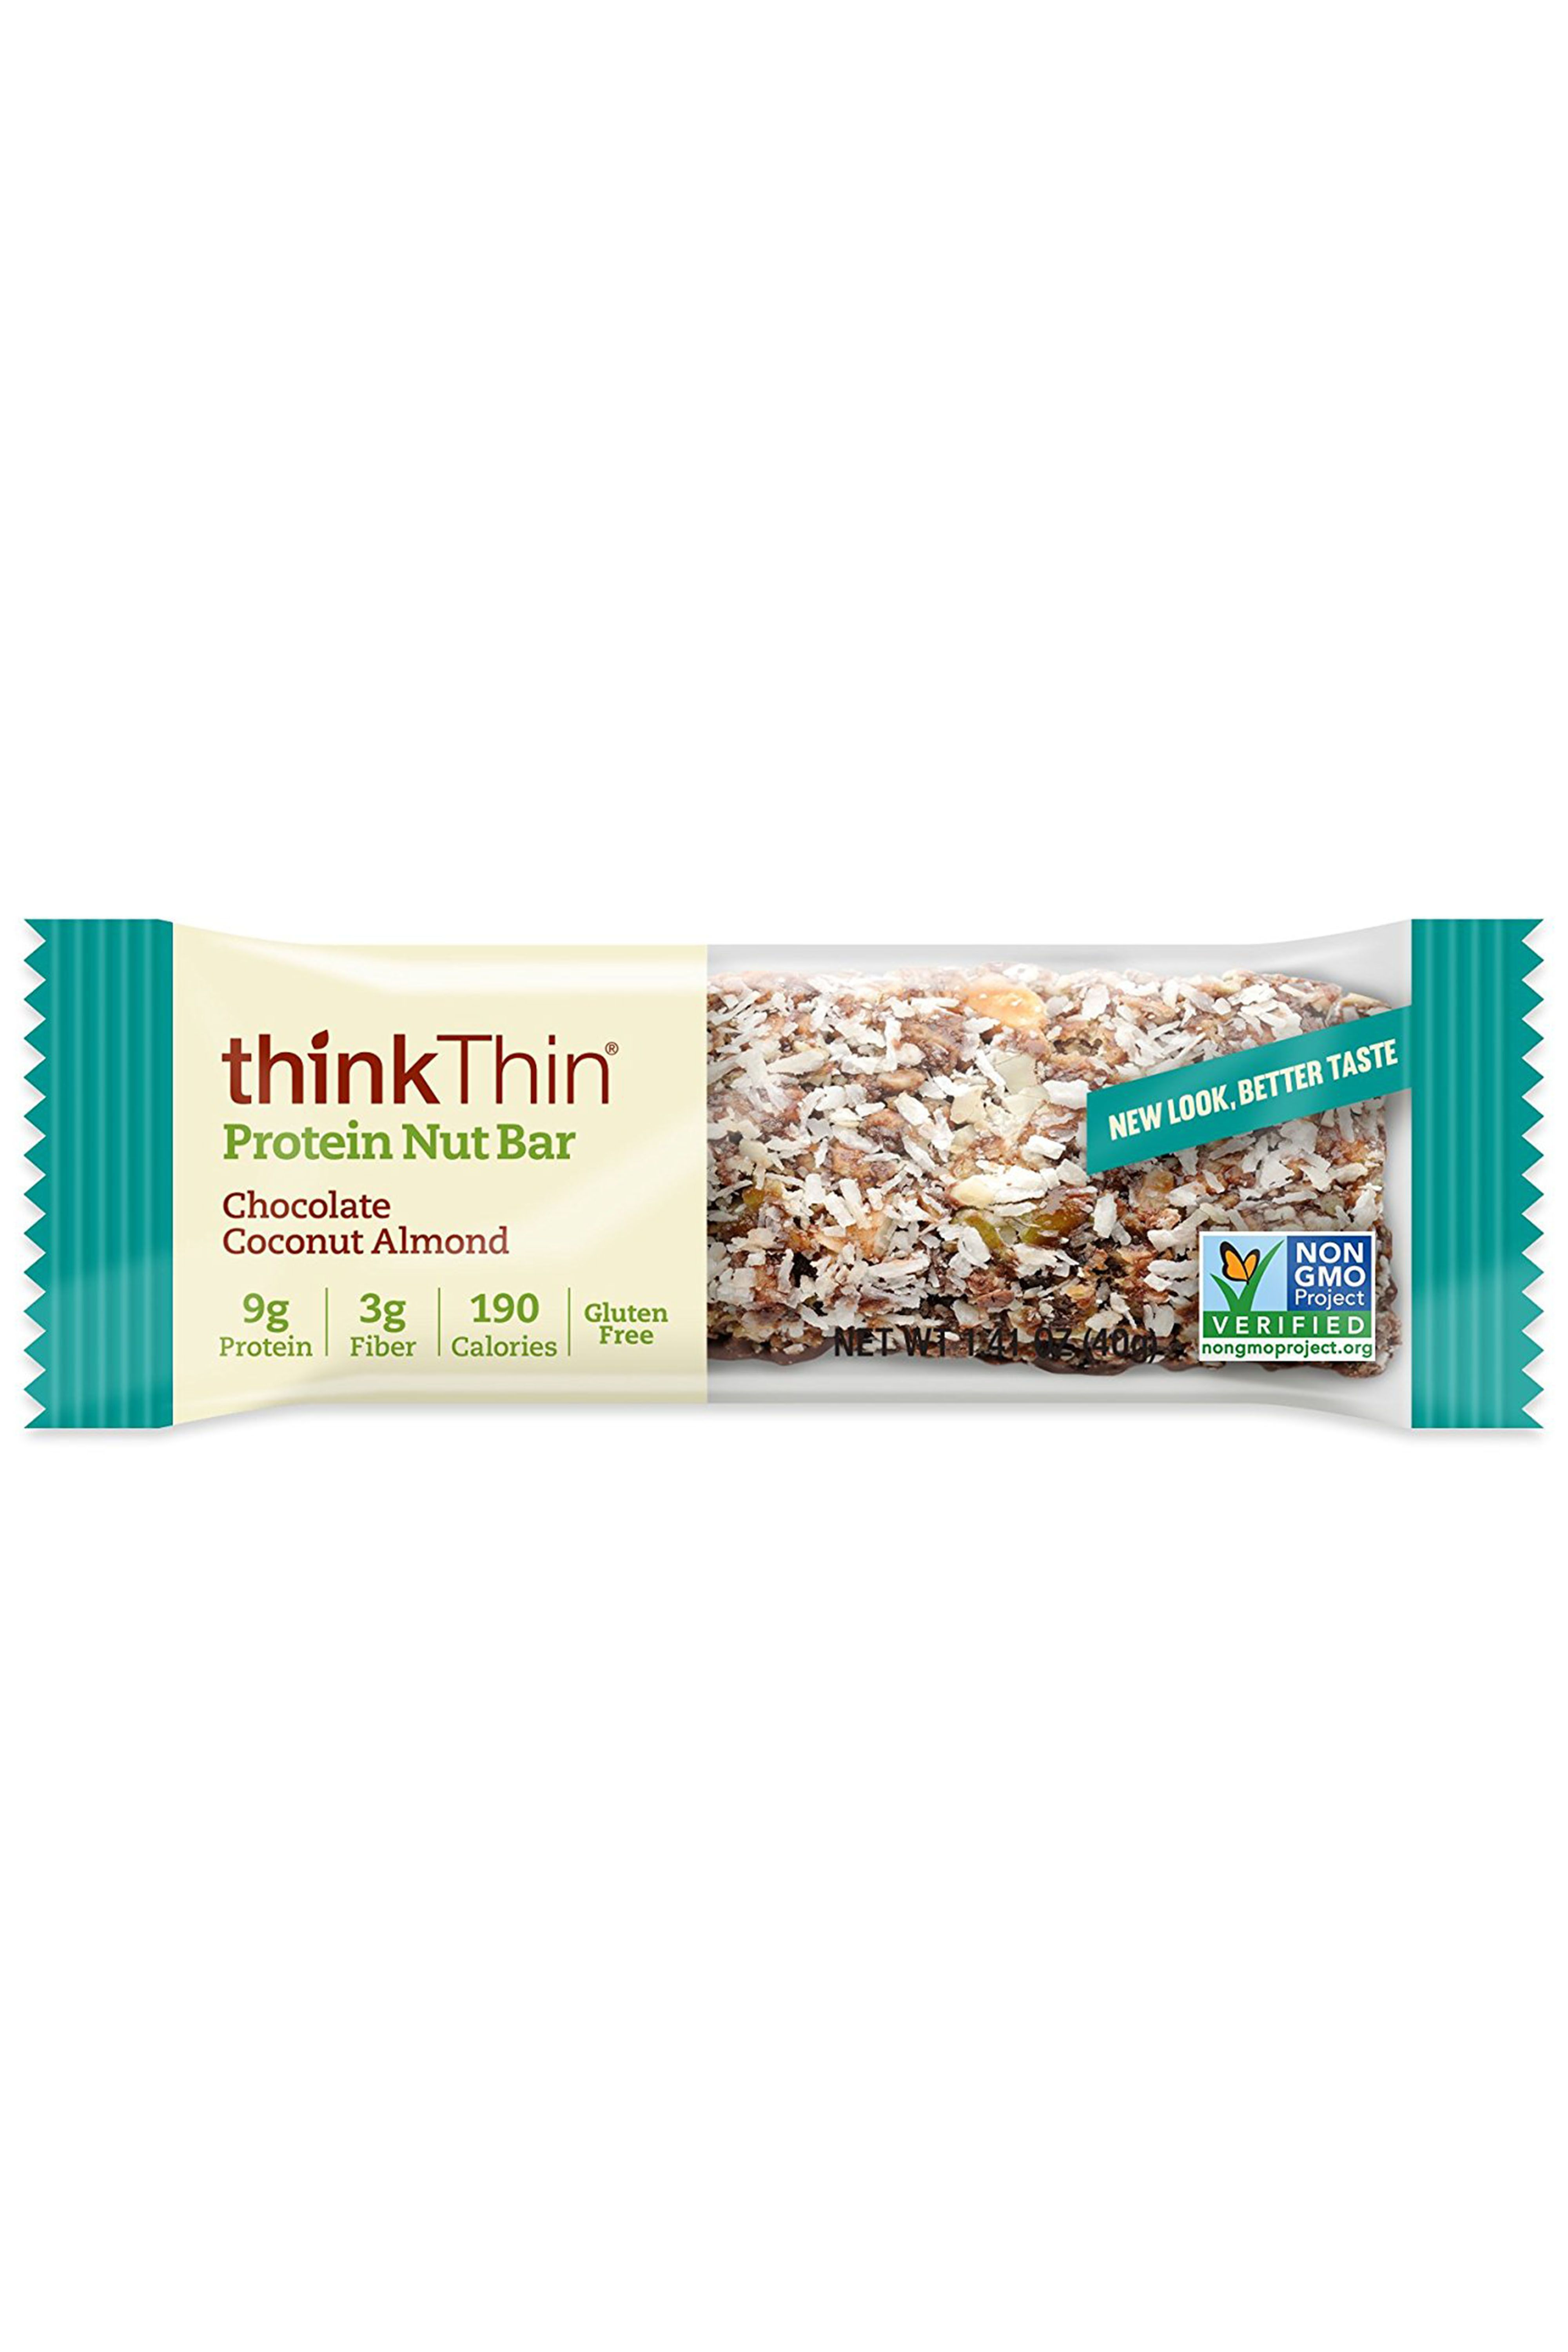 ThinkThin Protein Nut Bars in Chocolate Coconut Almond